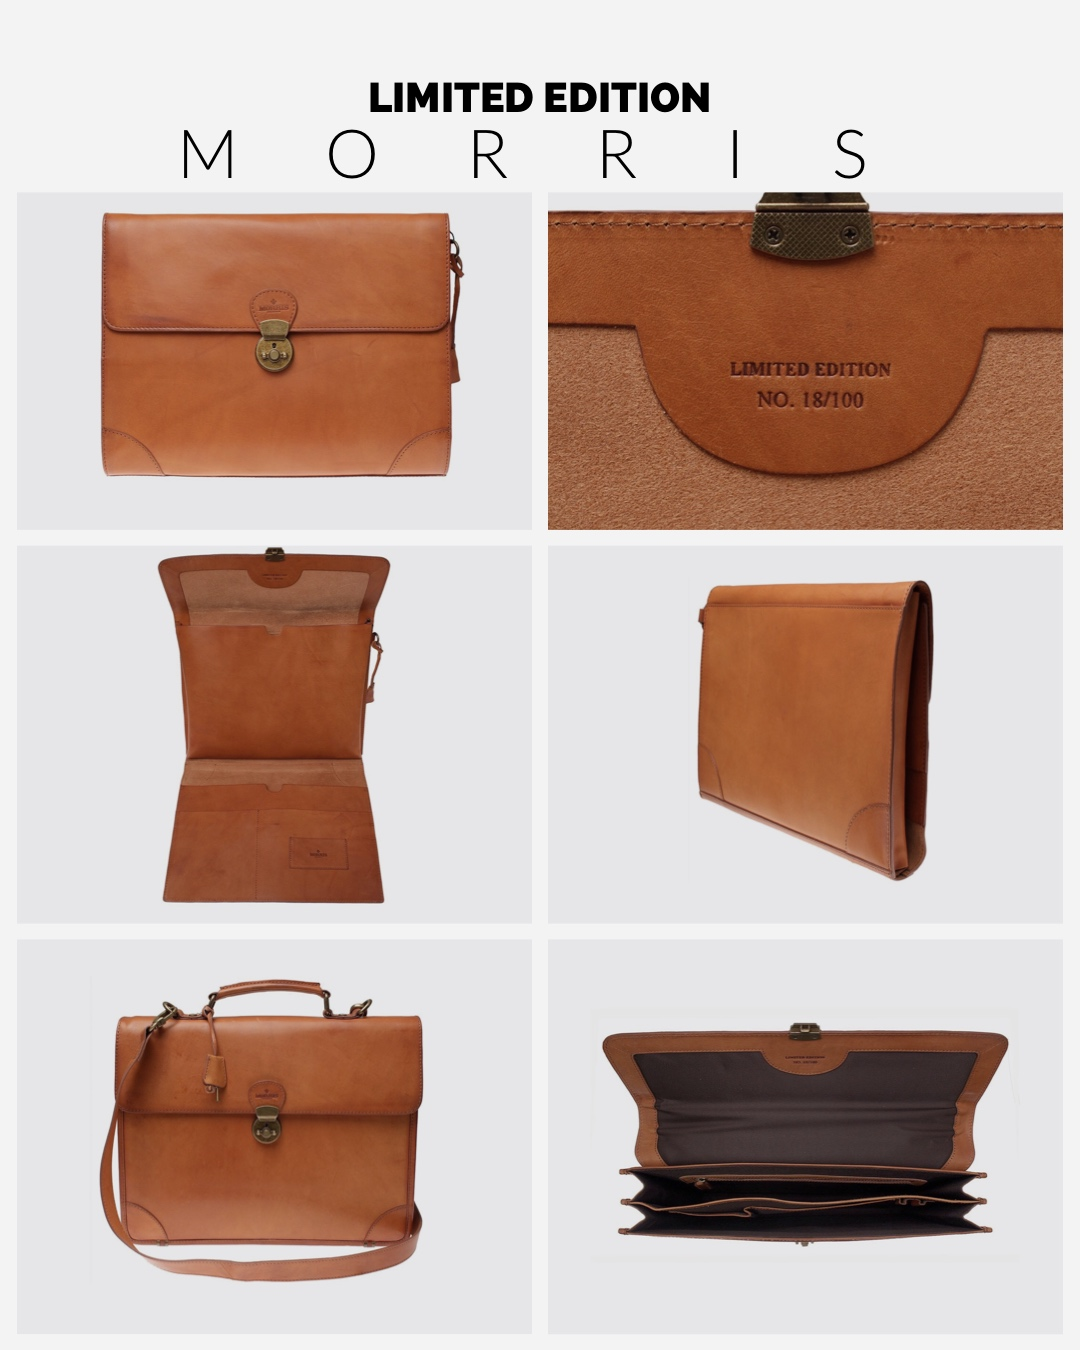 Morris Limited edition